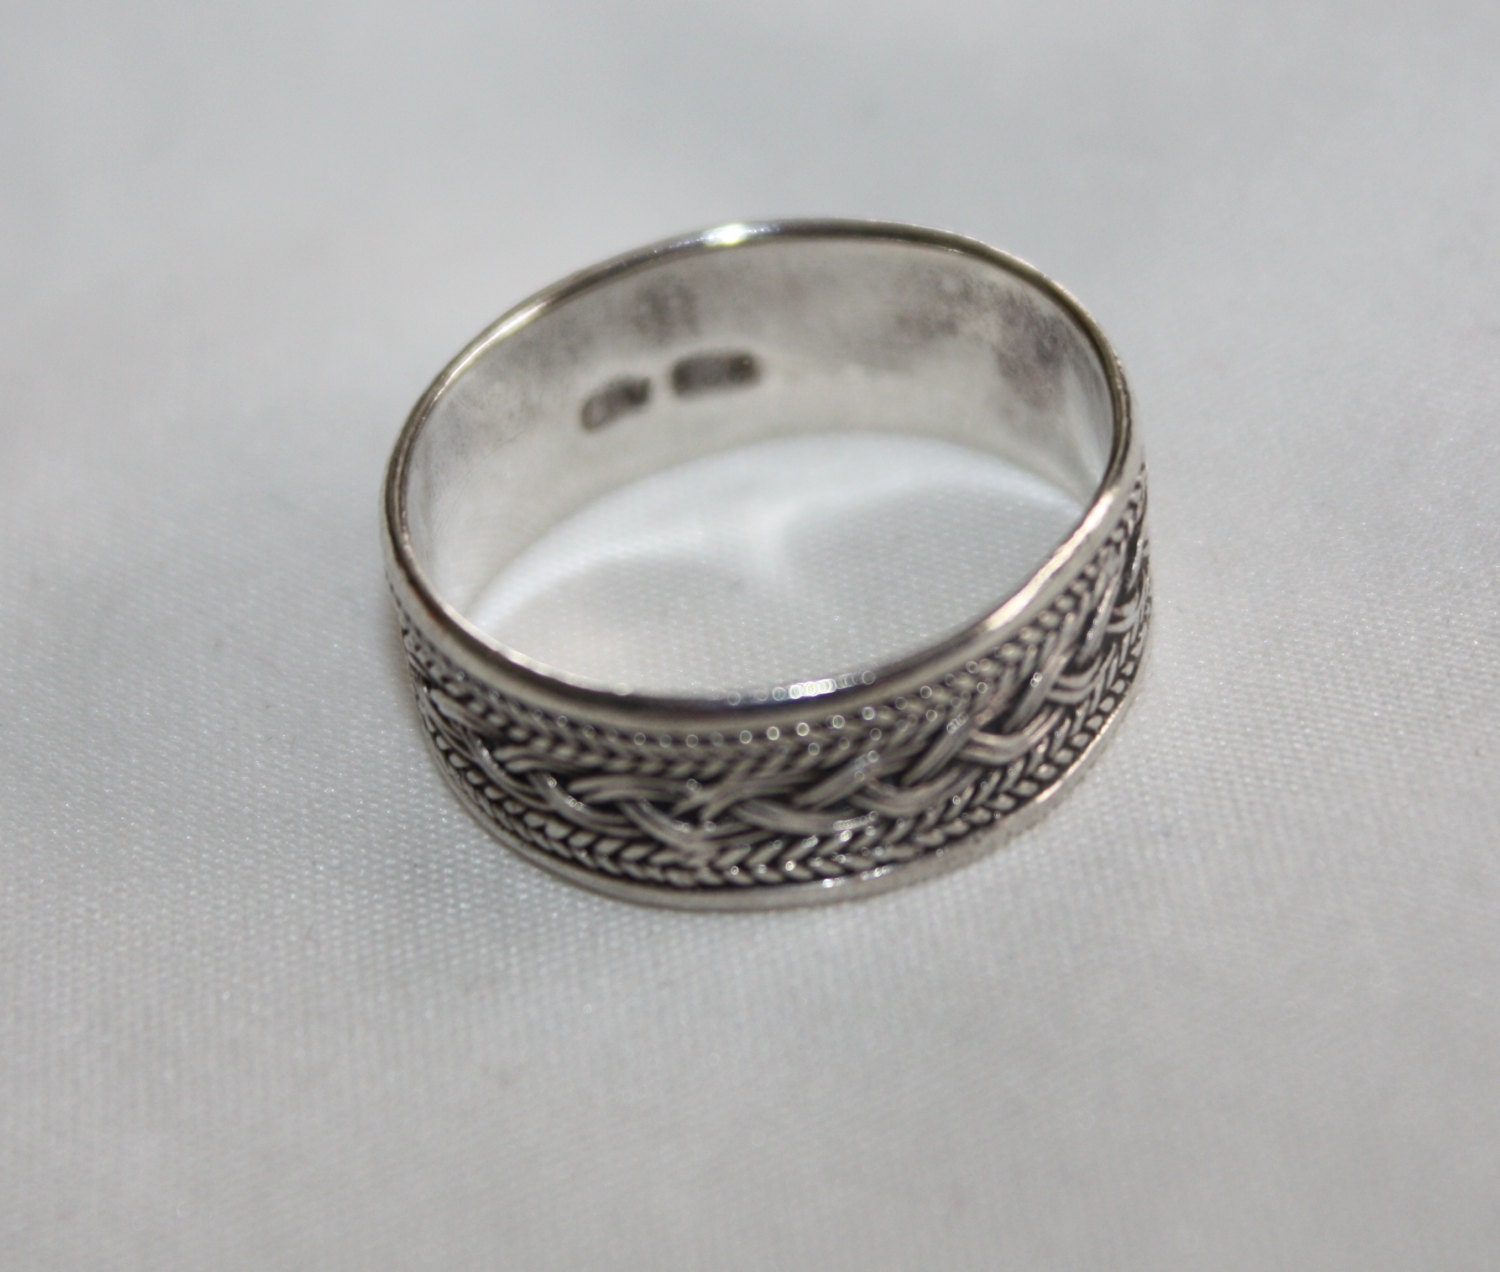 Basket Weaving Jewelry : Sterling ring basket weave band s jewelry wedding by